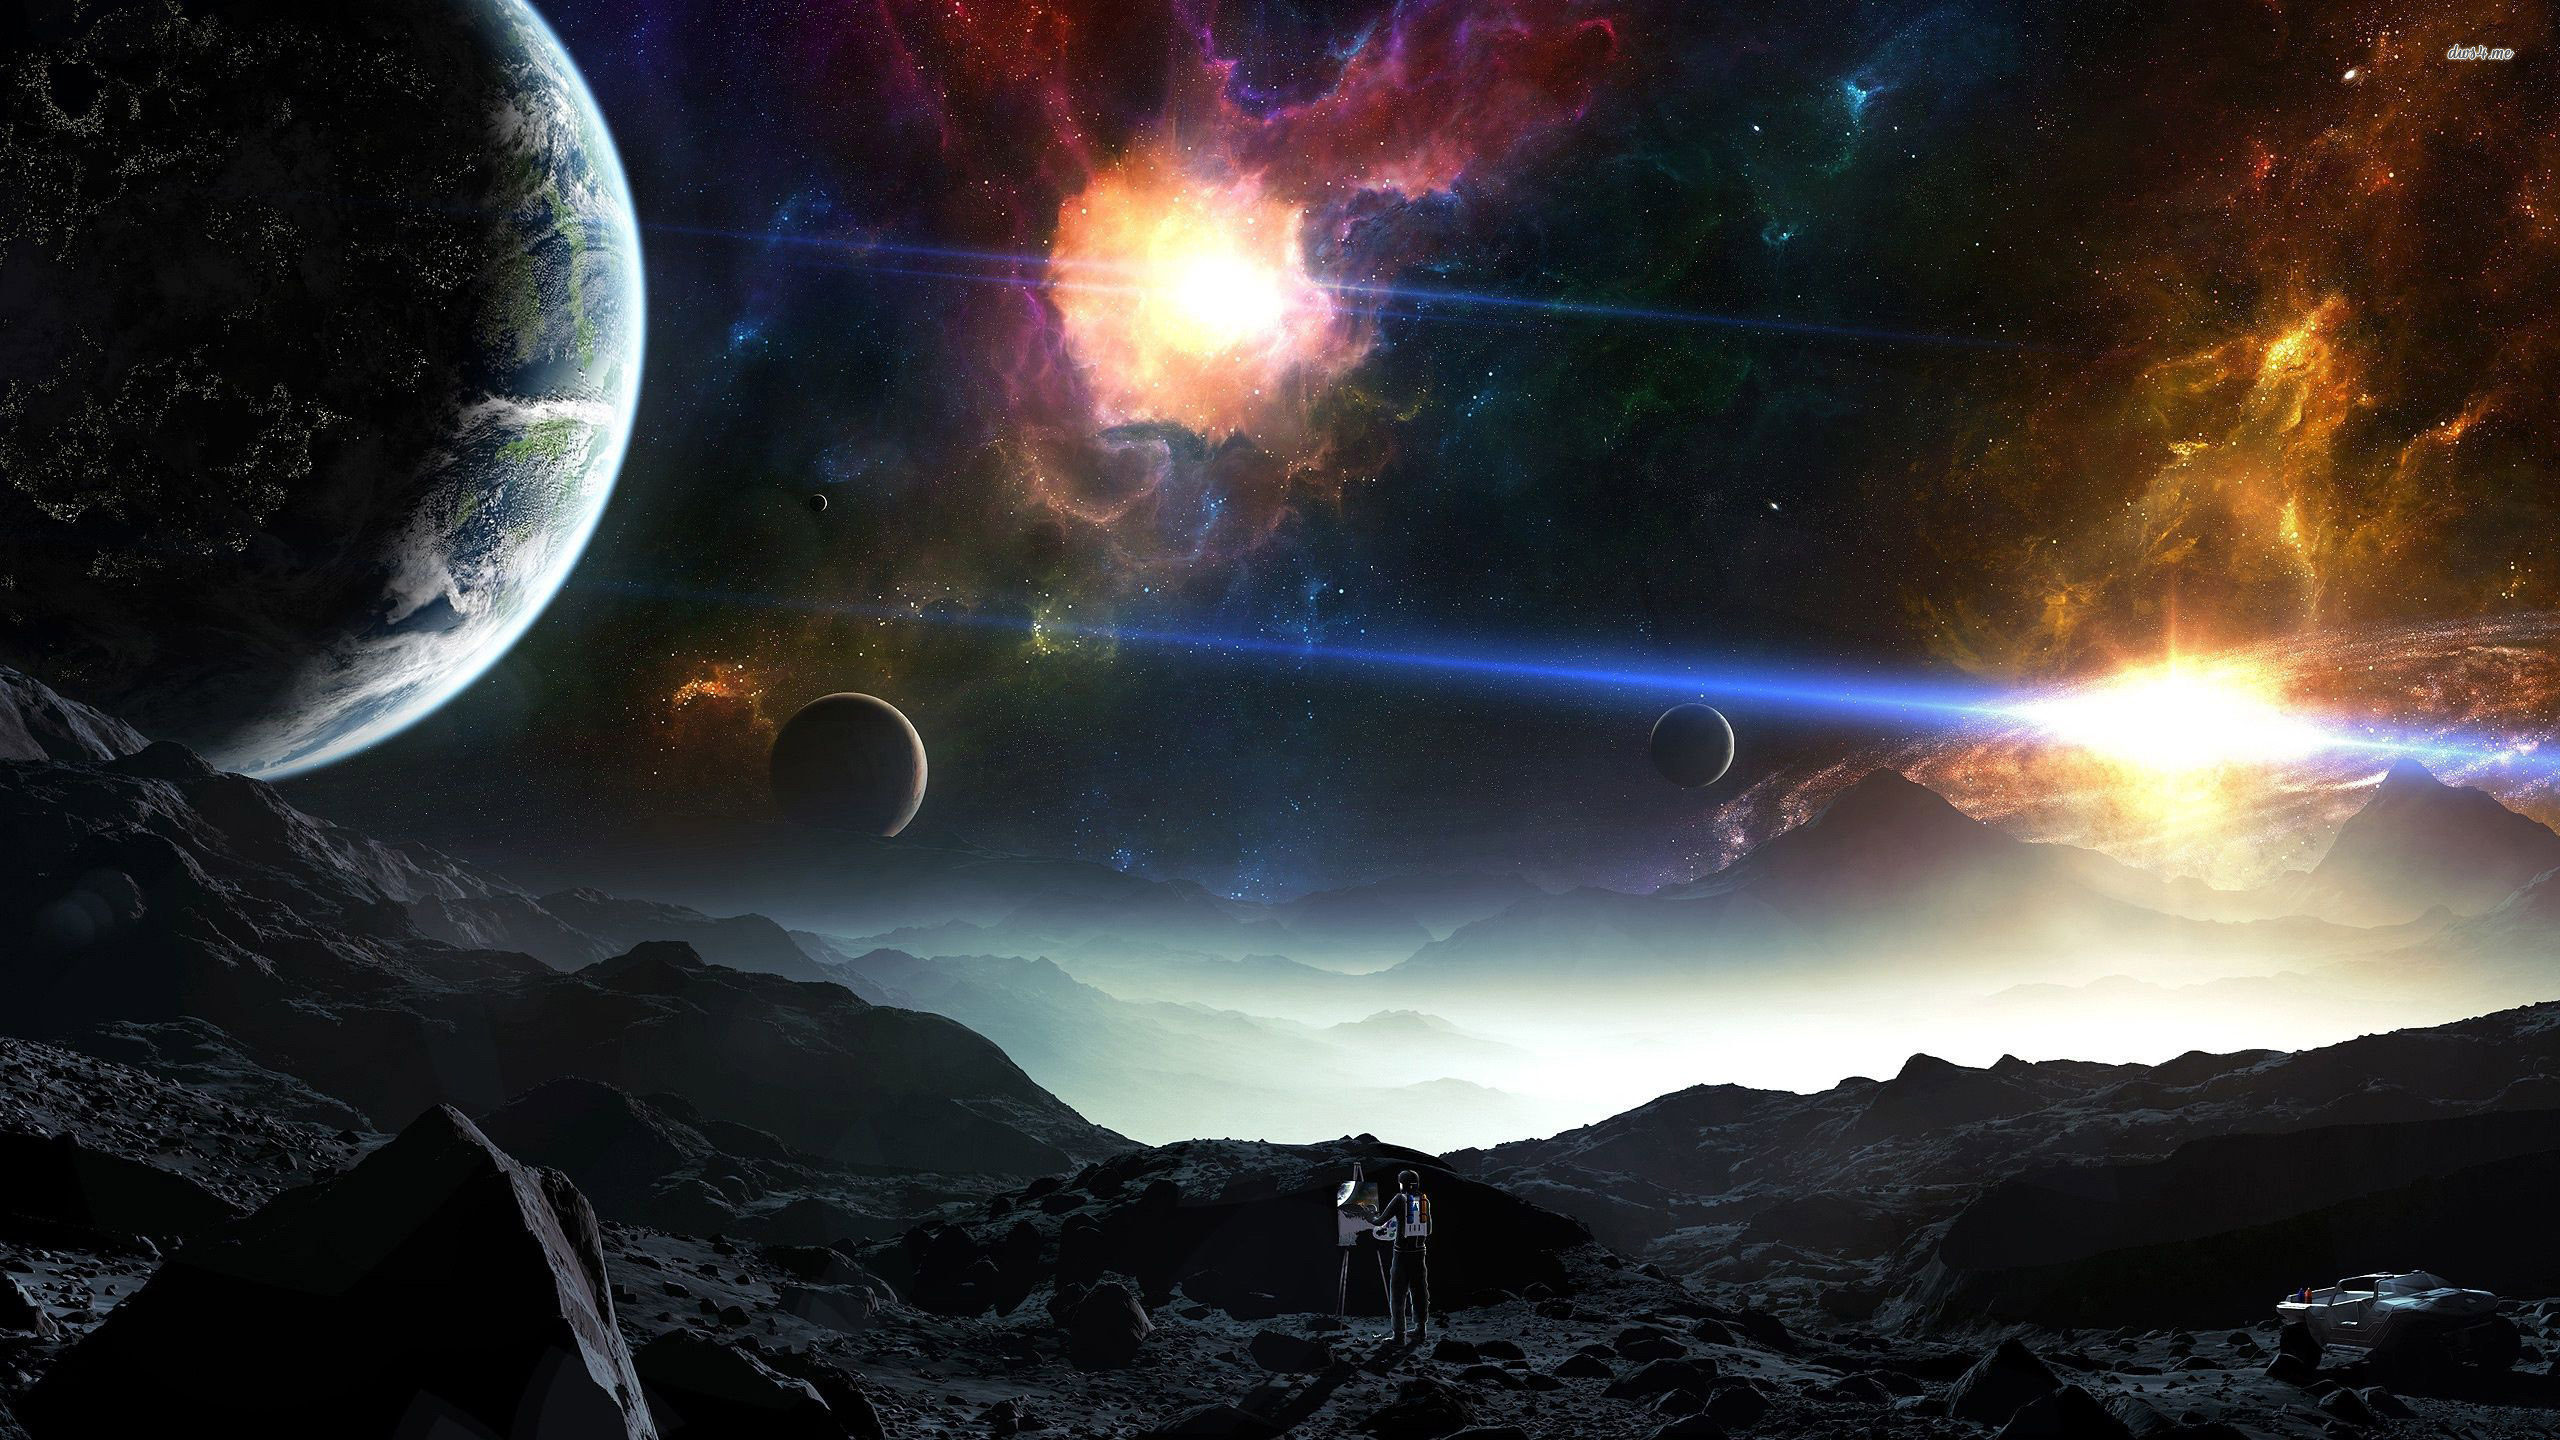 Space Wallpapers Wide 18 | Walltiny. | Astronomy | Pinterest | Wallpaper,  Spaces and Hd wallpaper